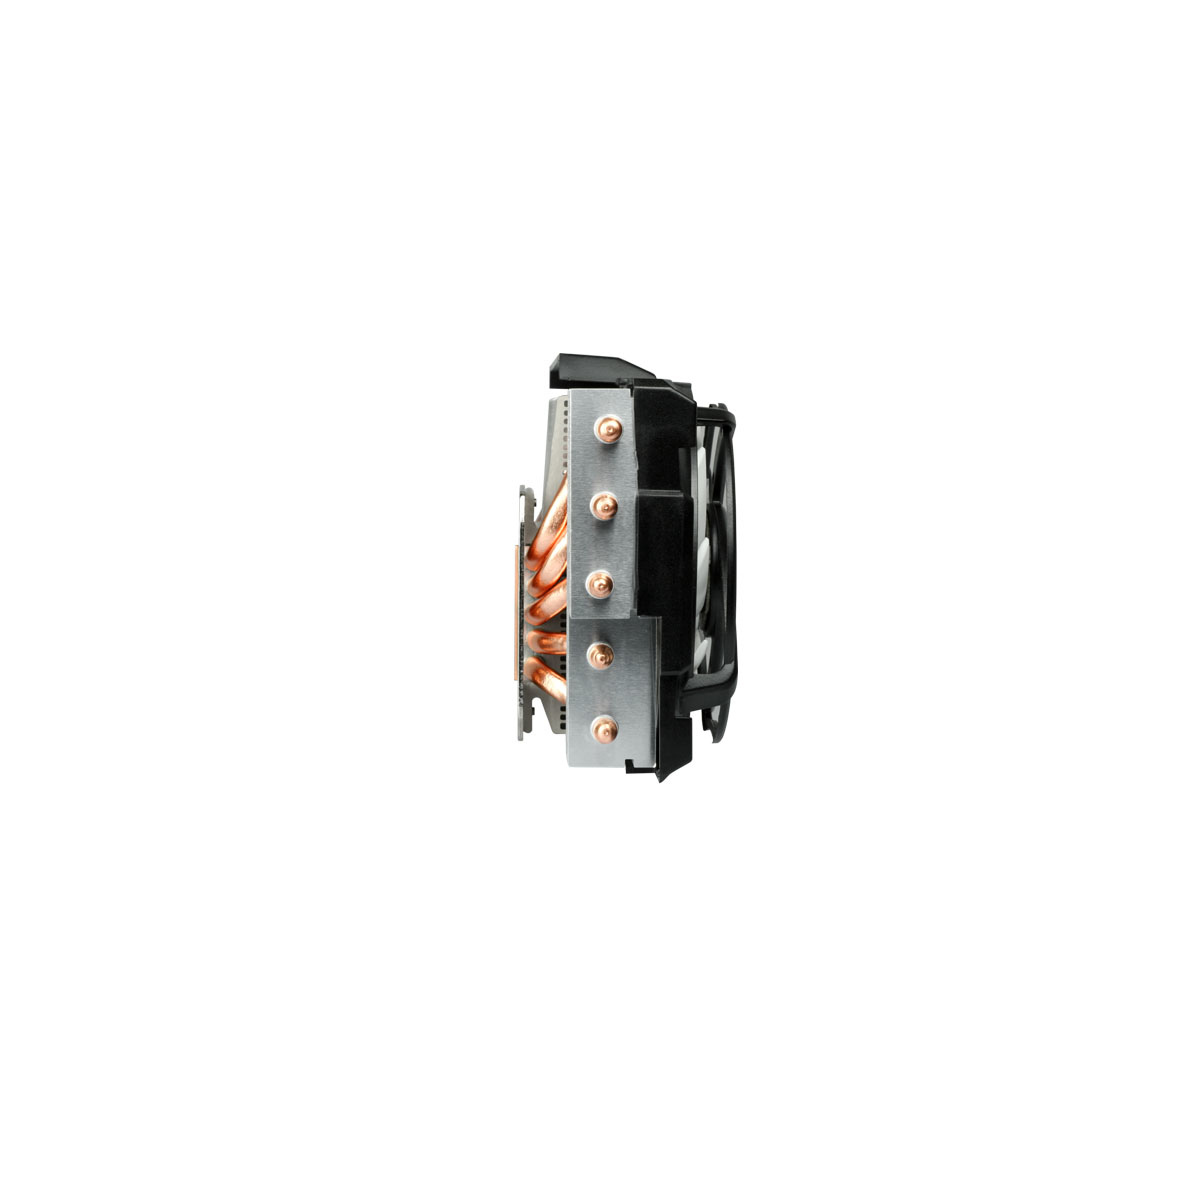 ARCTIC Accelero Xtreme IV Video card Cooler DCACO-V800001-GBA01